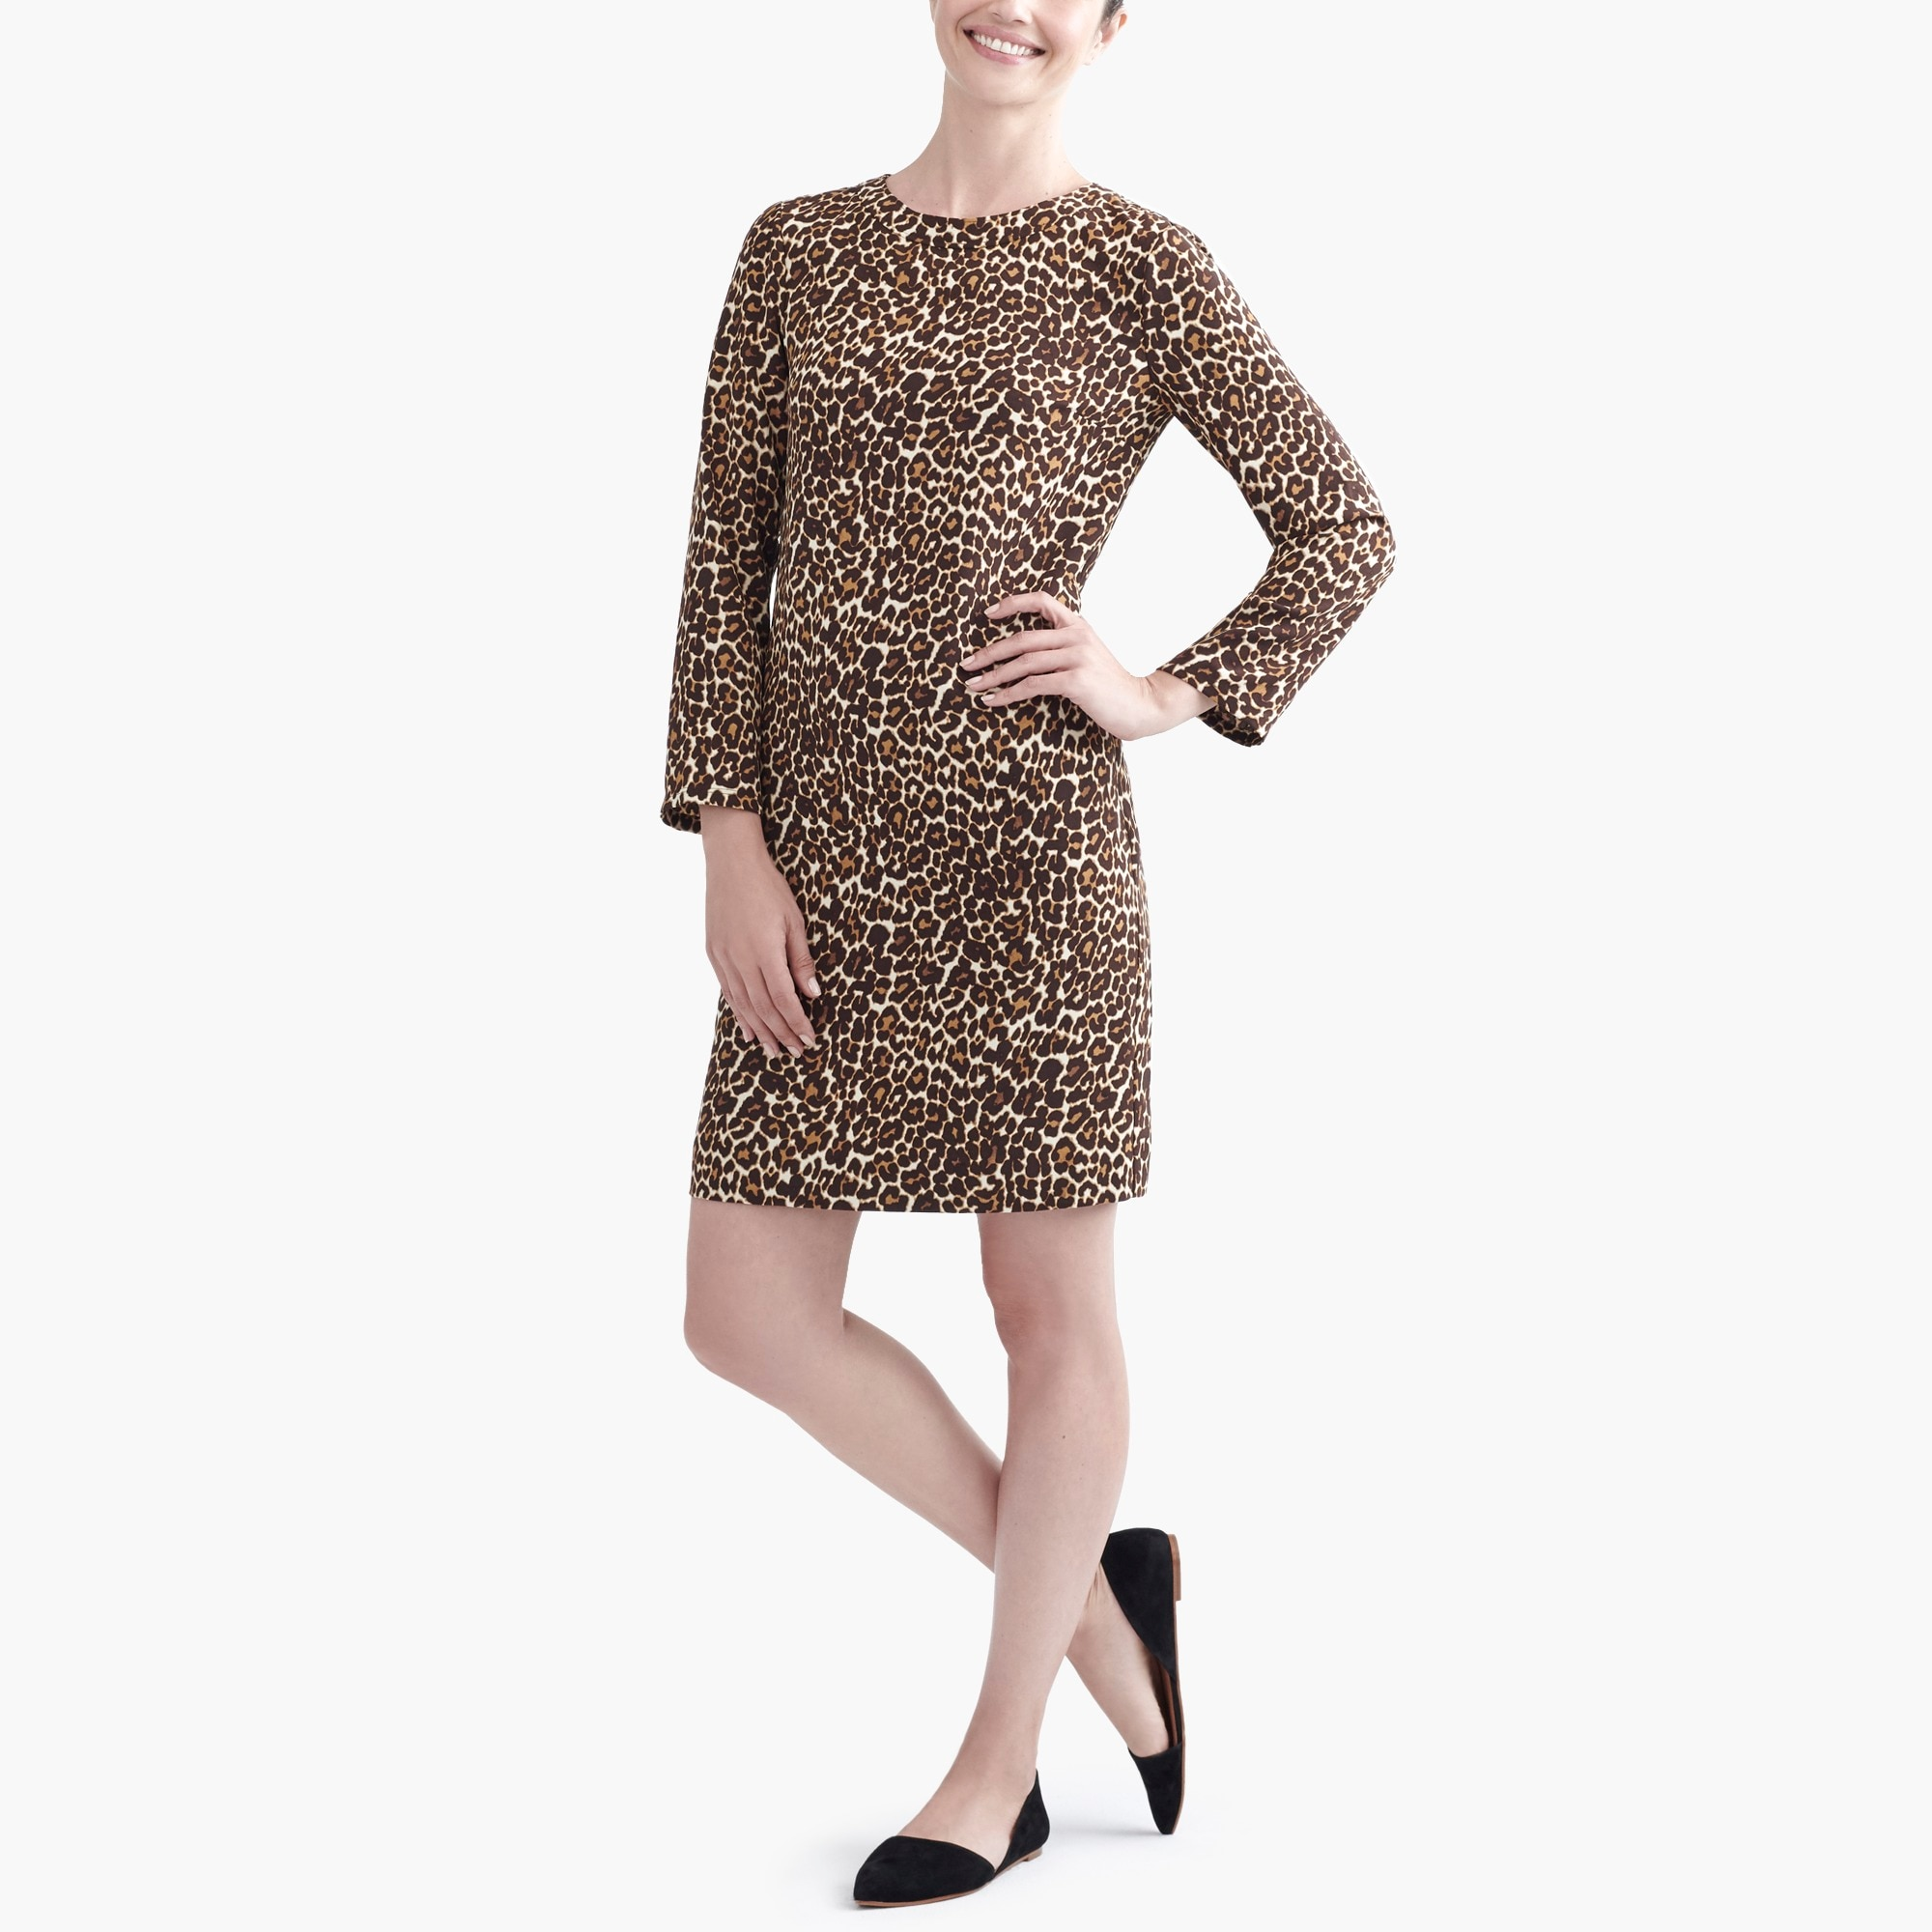 Image 1 for Crepe shift dress in cat print